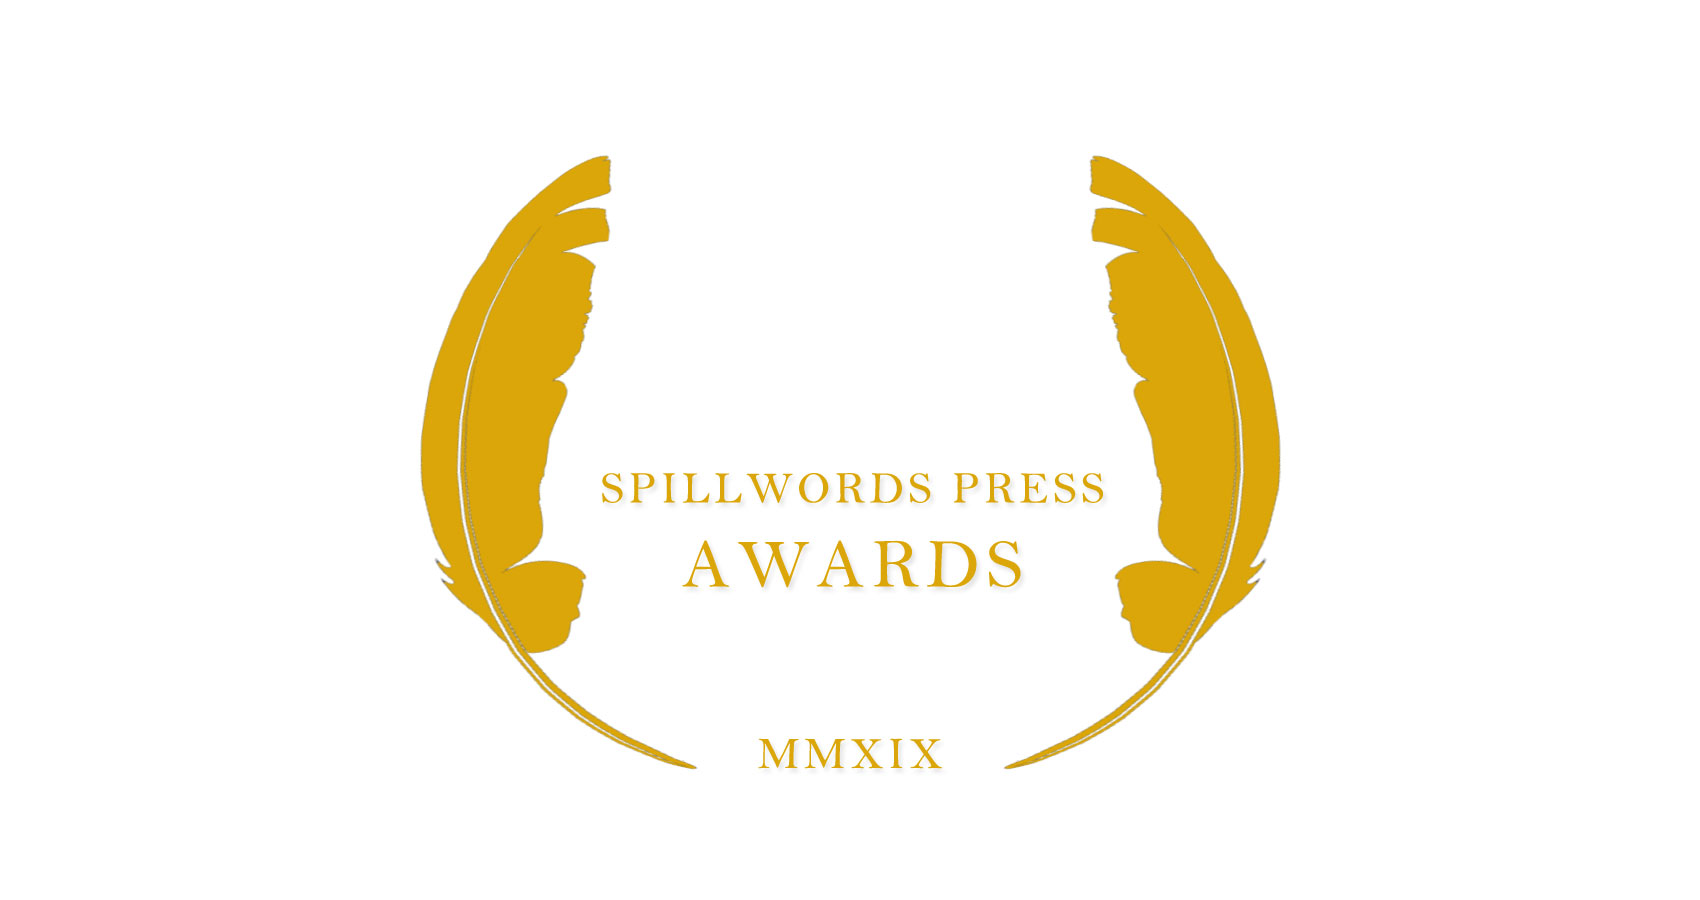 Spillwords Press Awards 2019, and the winners are... at Spillwords.com